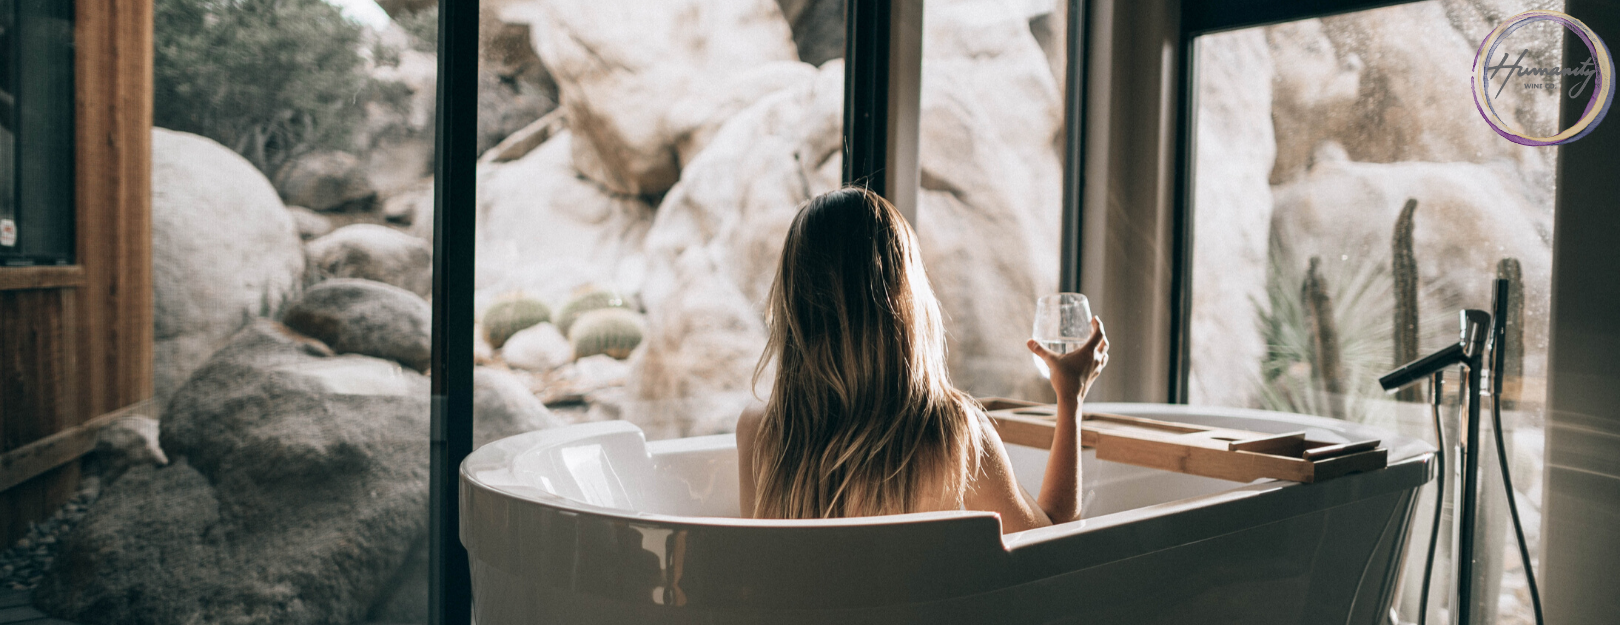 Relax in the bath with a glass of wine